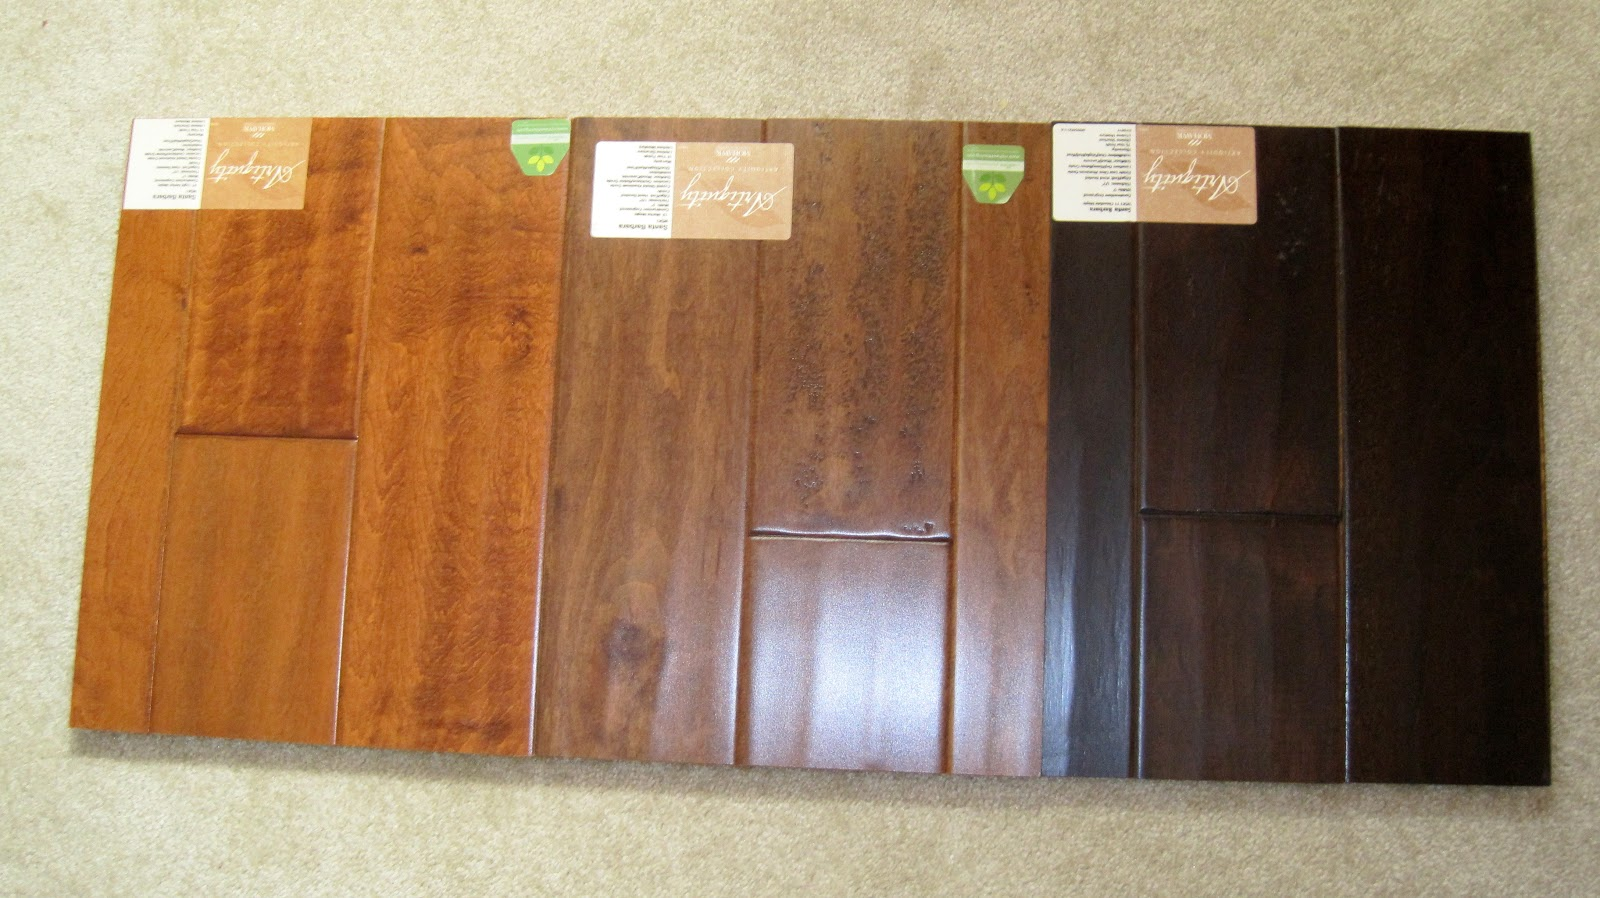 I married a tree hugger hardwood choices for Hardwood floor colors